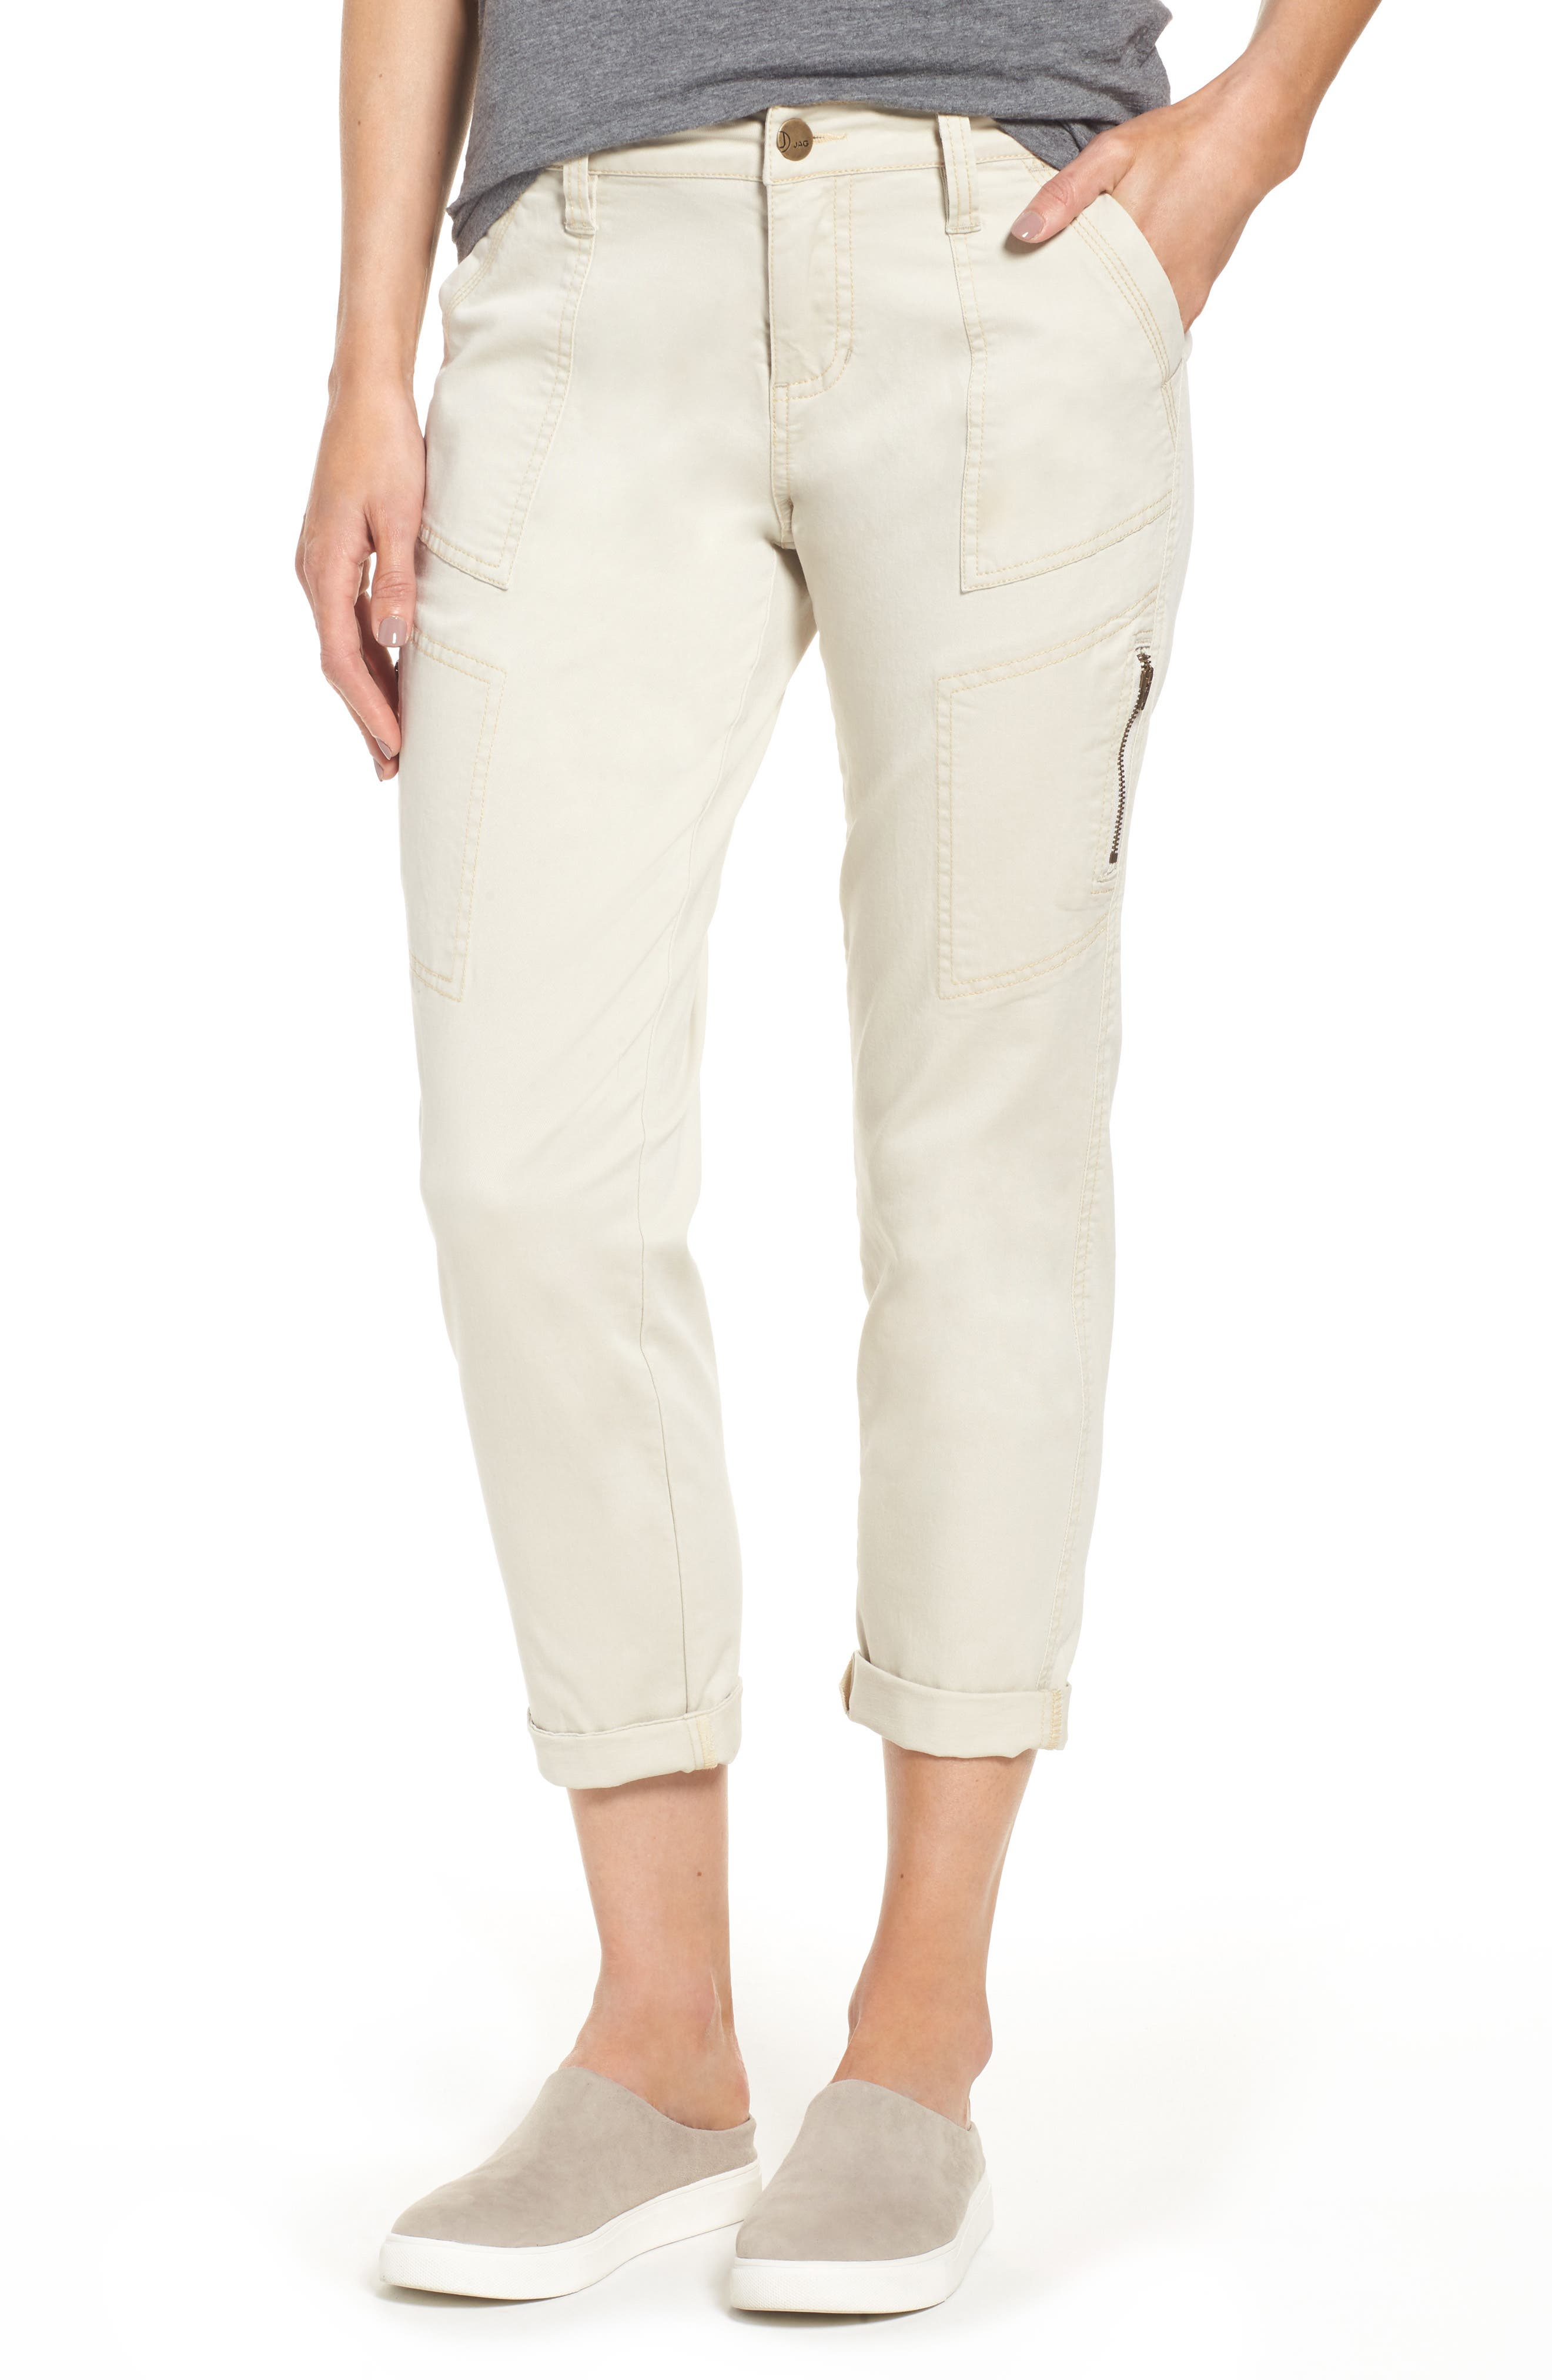 Gable Stretch Twill Utility Pants,                             Main thumbnail 1, color,                             Stone